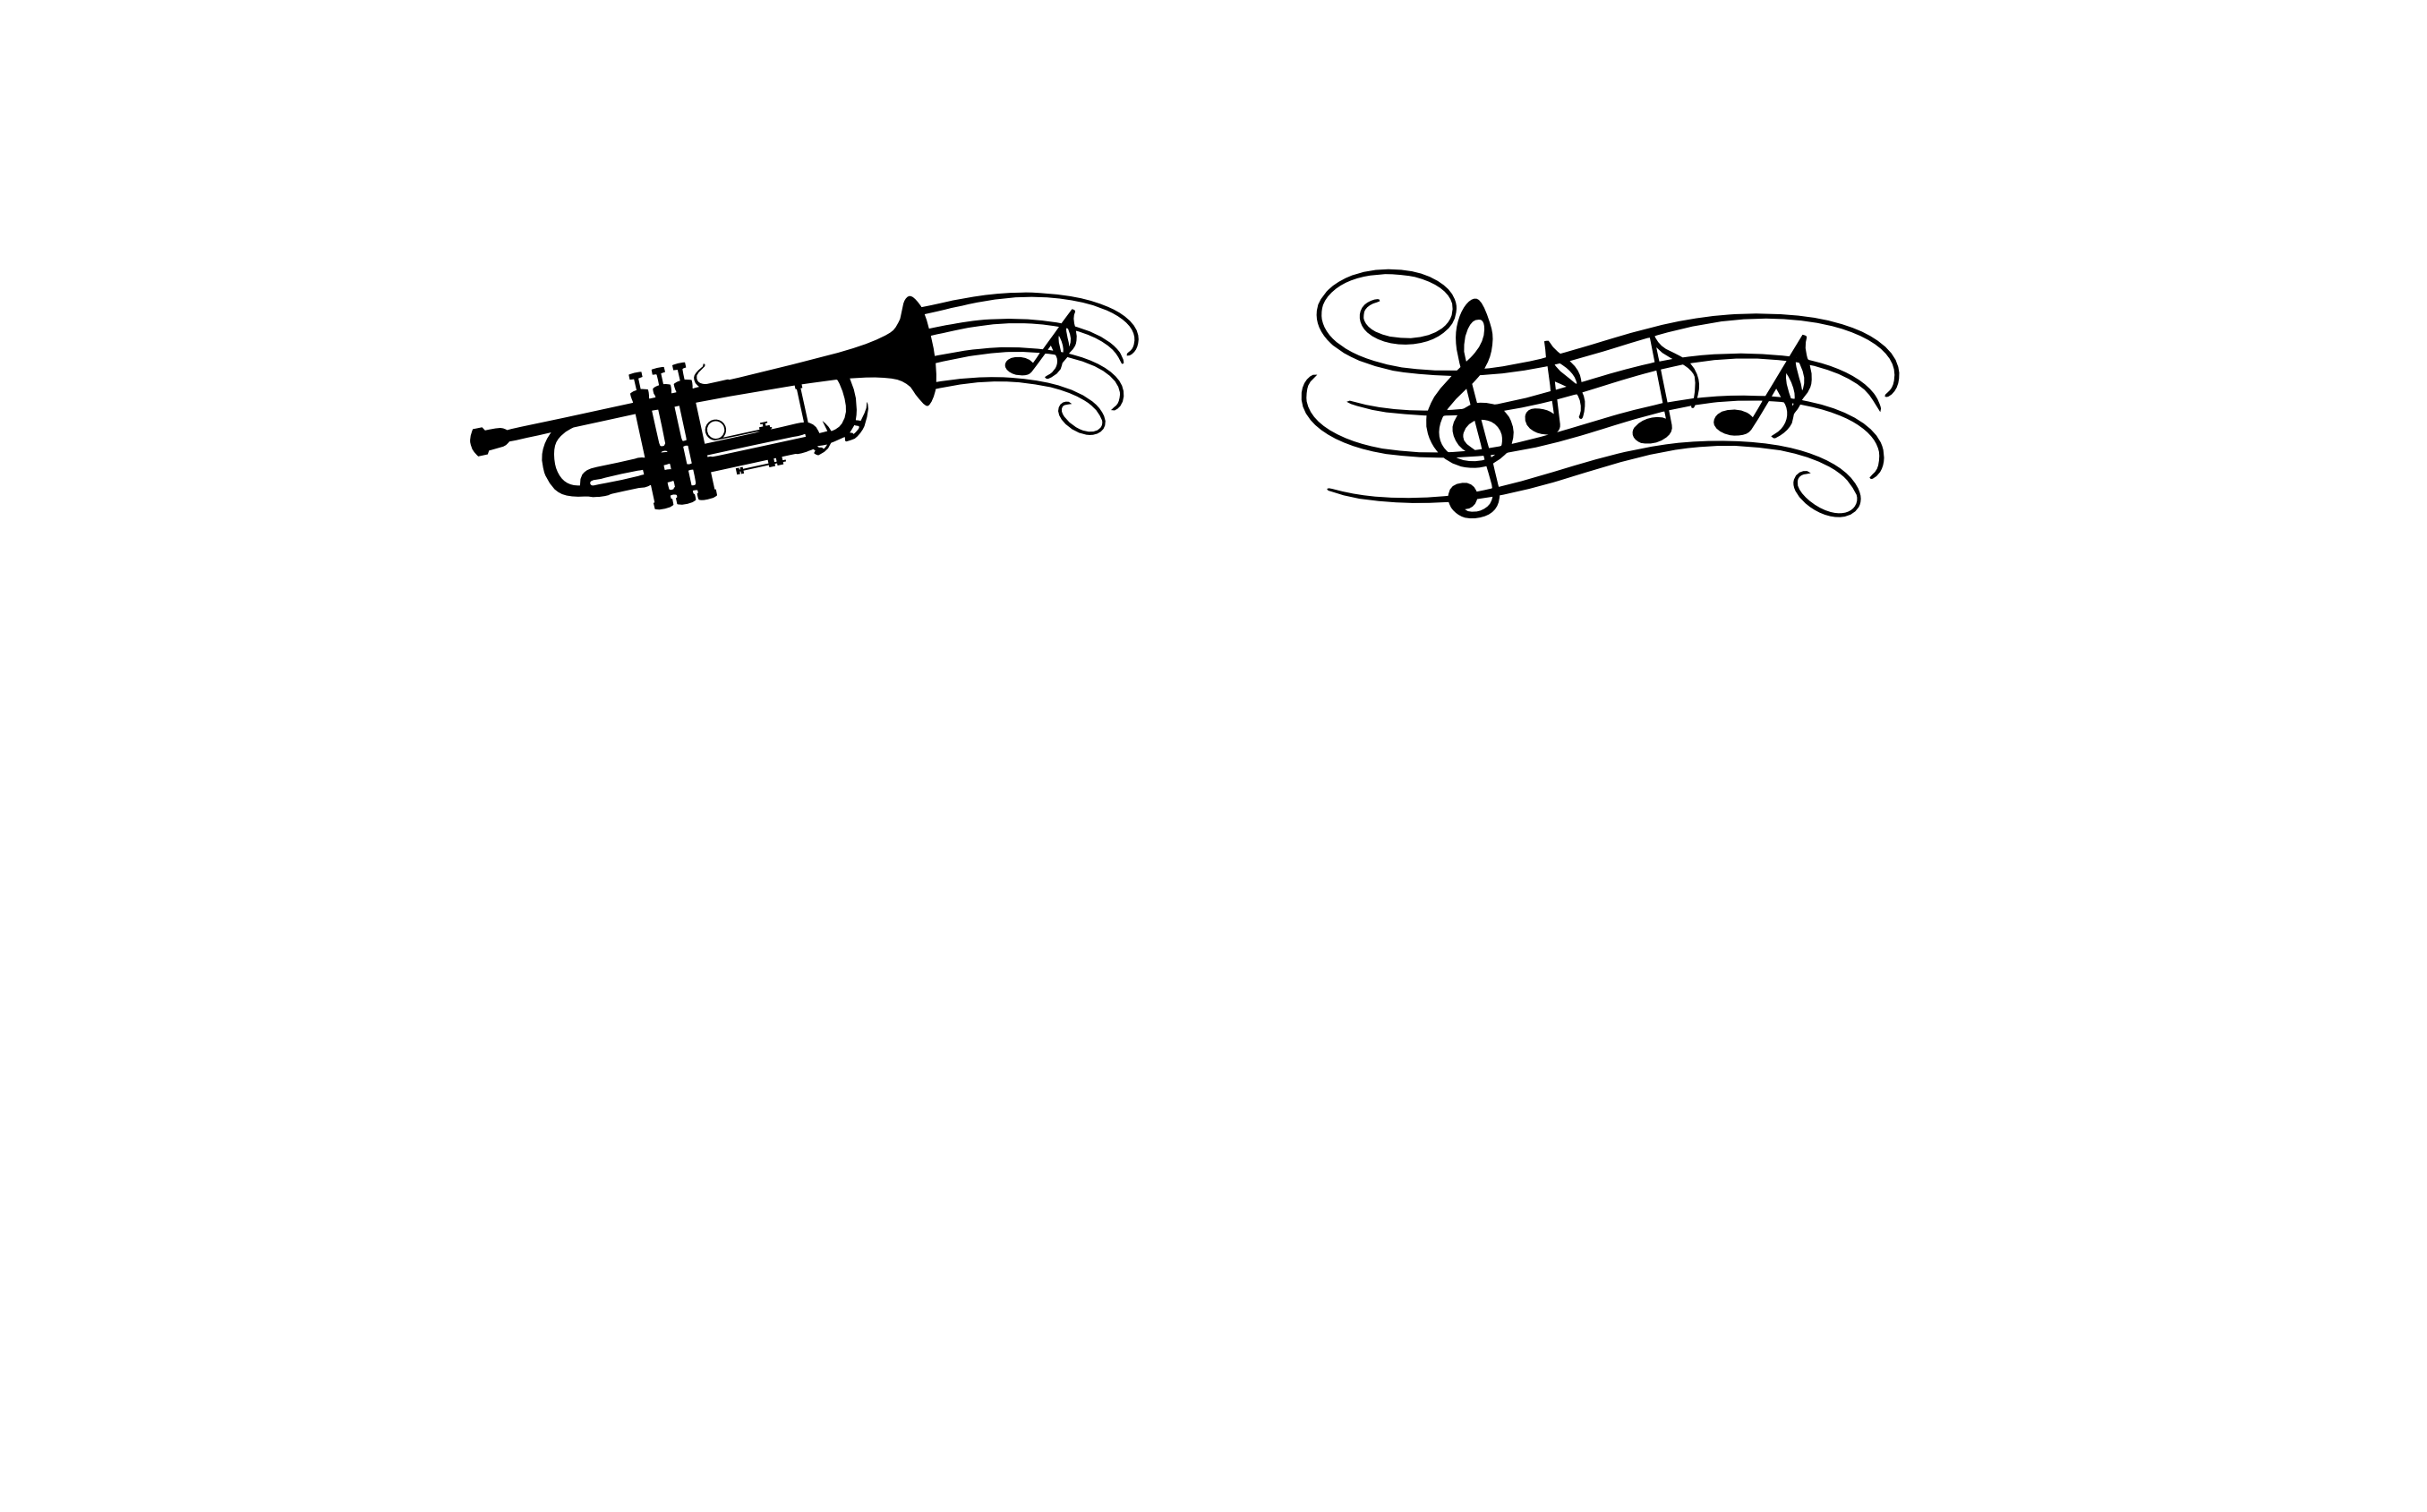 Wylers on Wheels